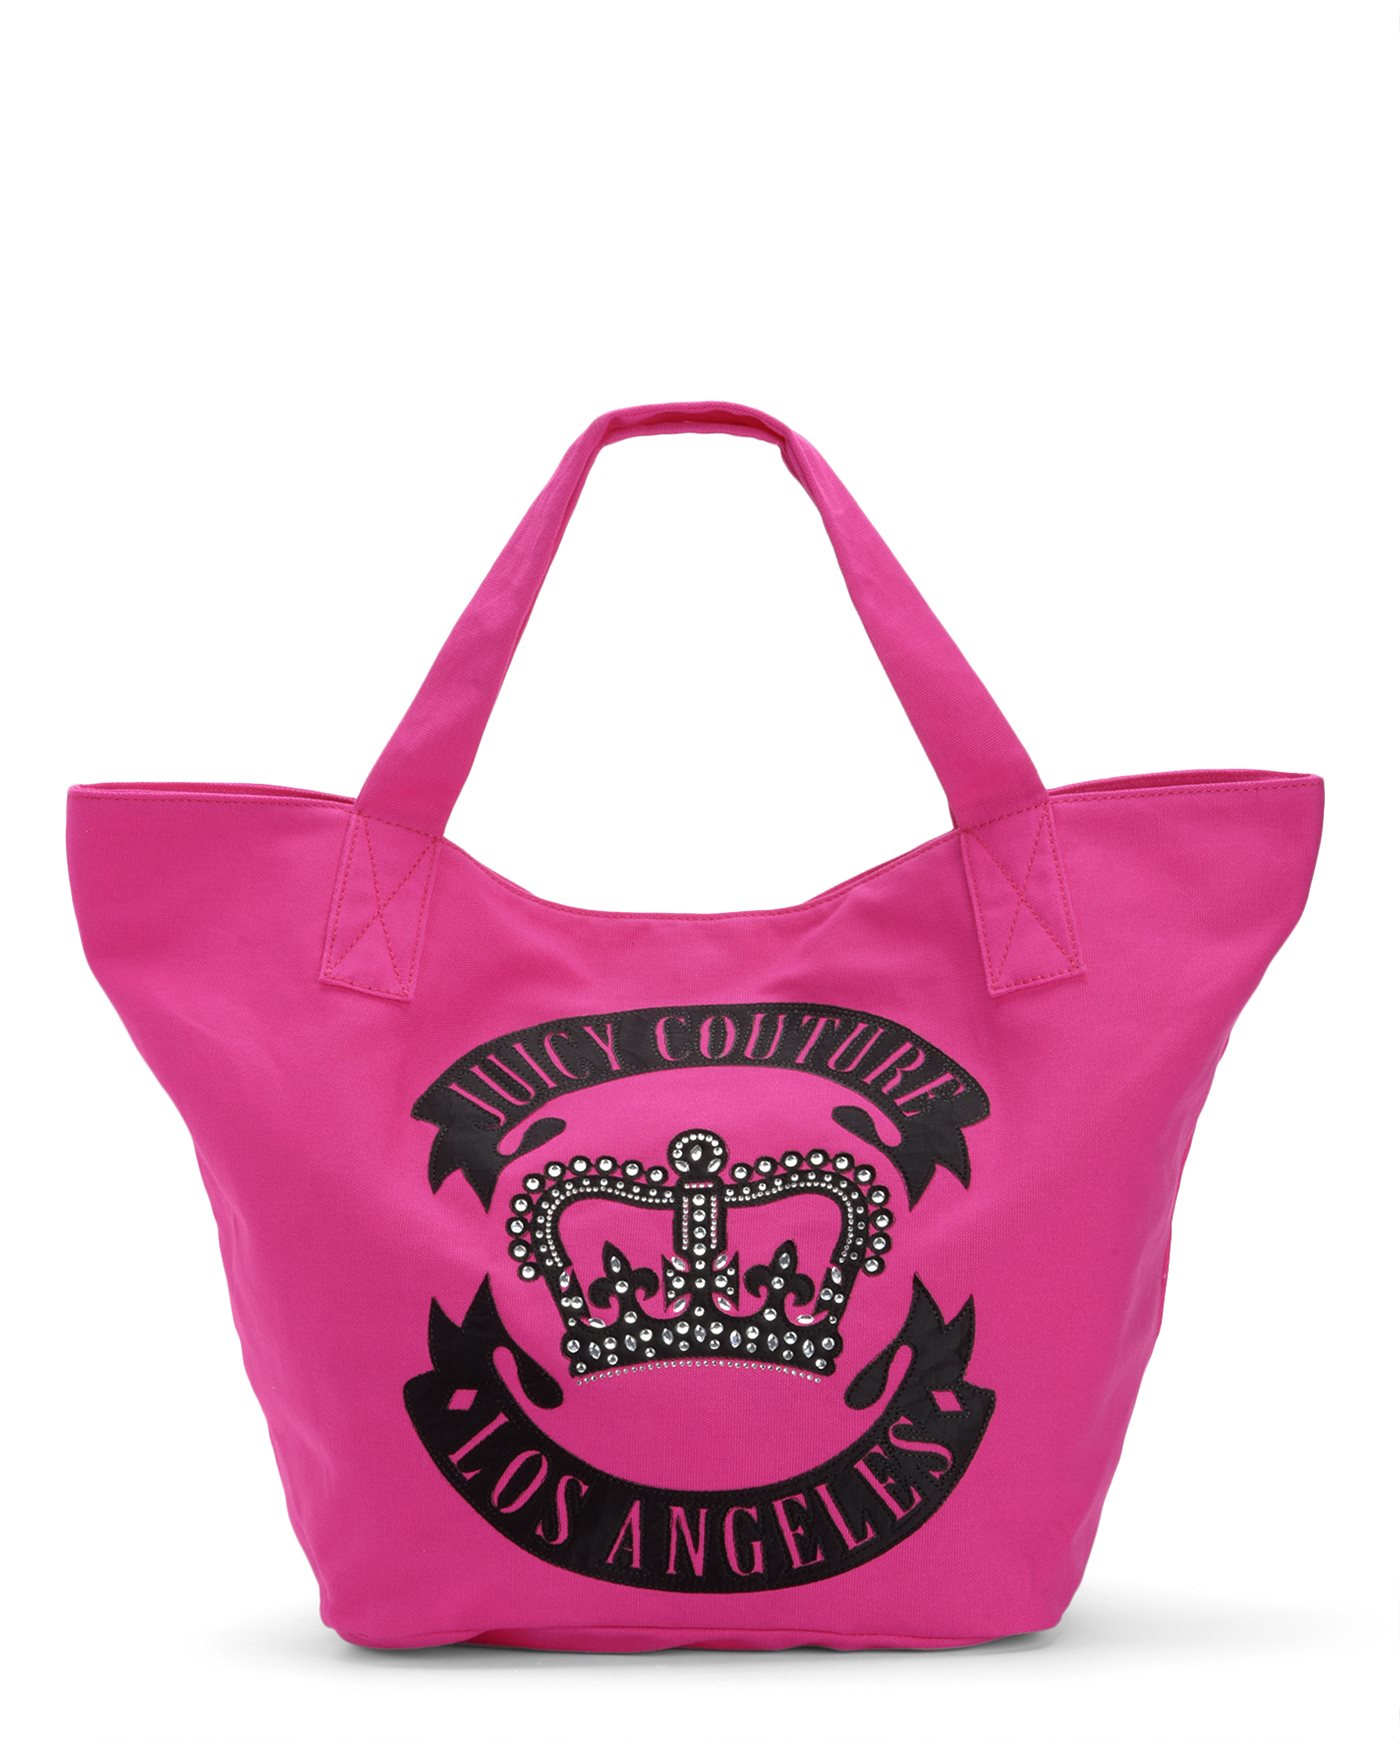 juicy couture glam crown canvas tote bag in pink lyst. Black Bedroom Furniture Sets. Home Design Ideas